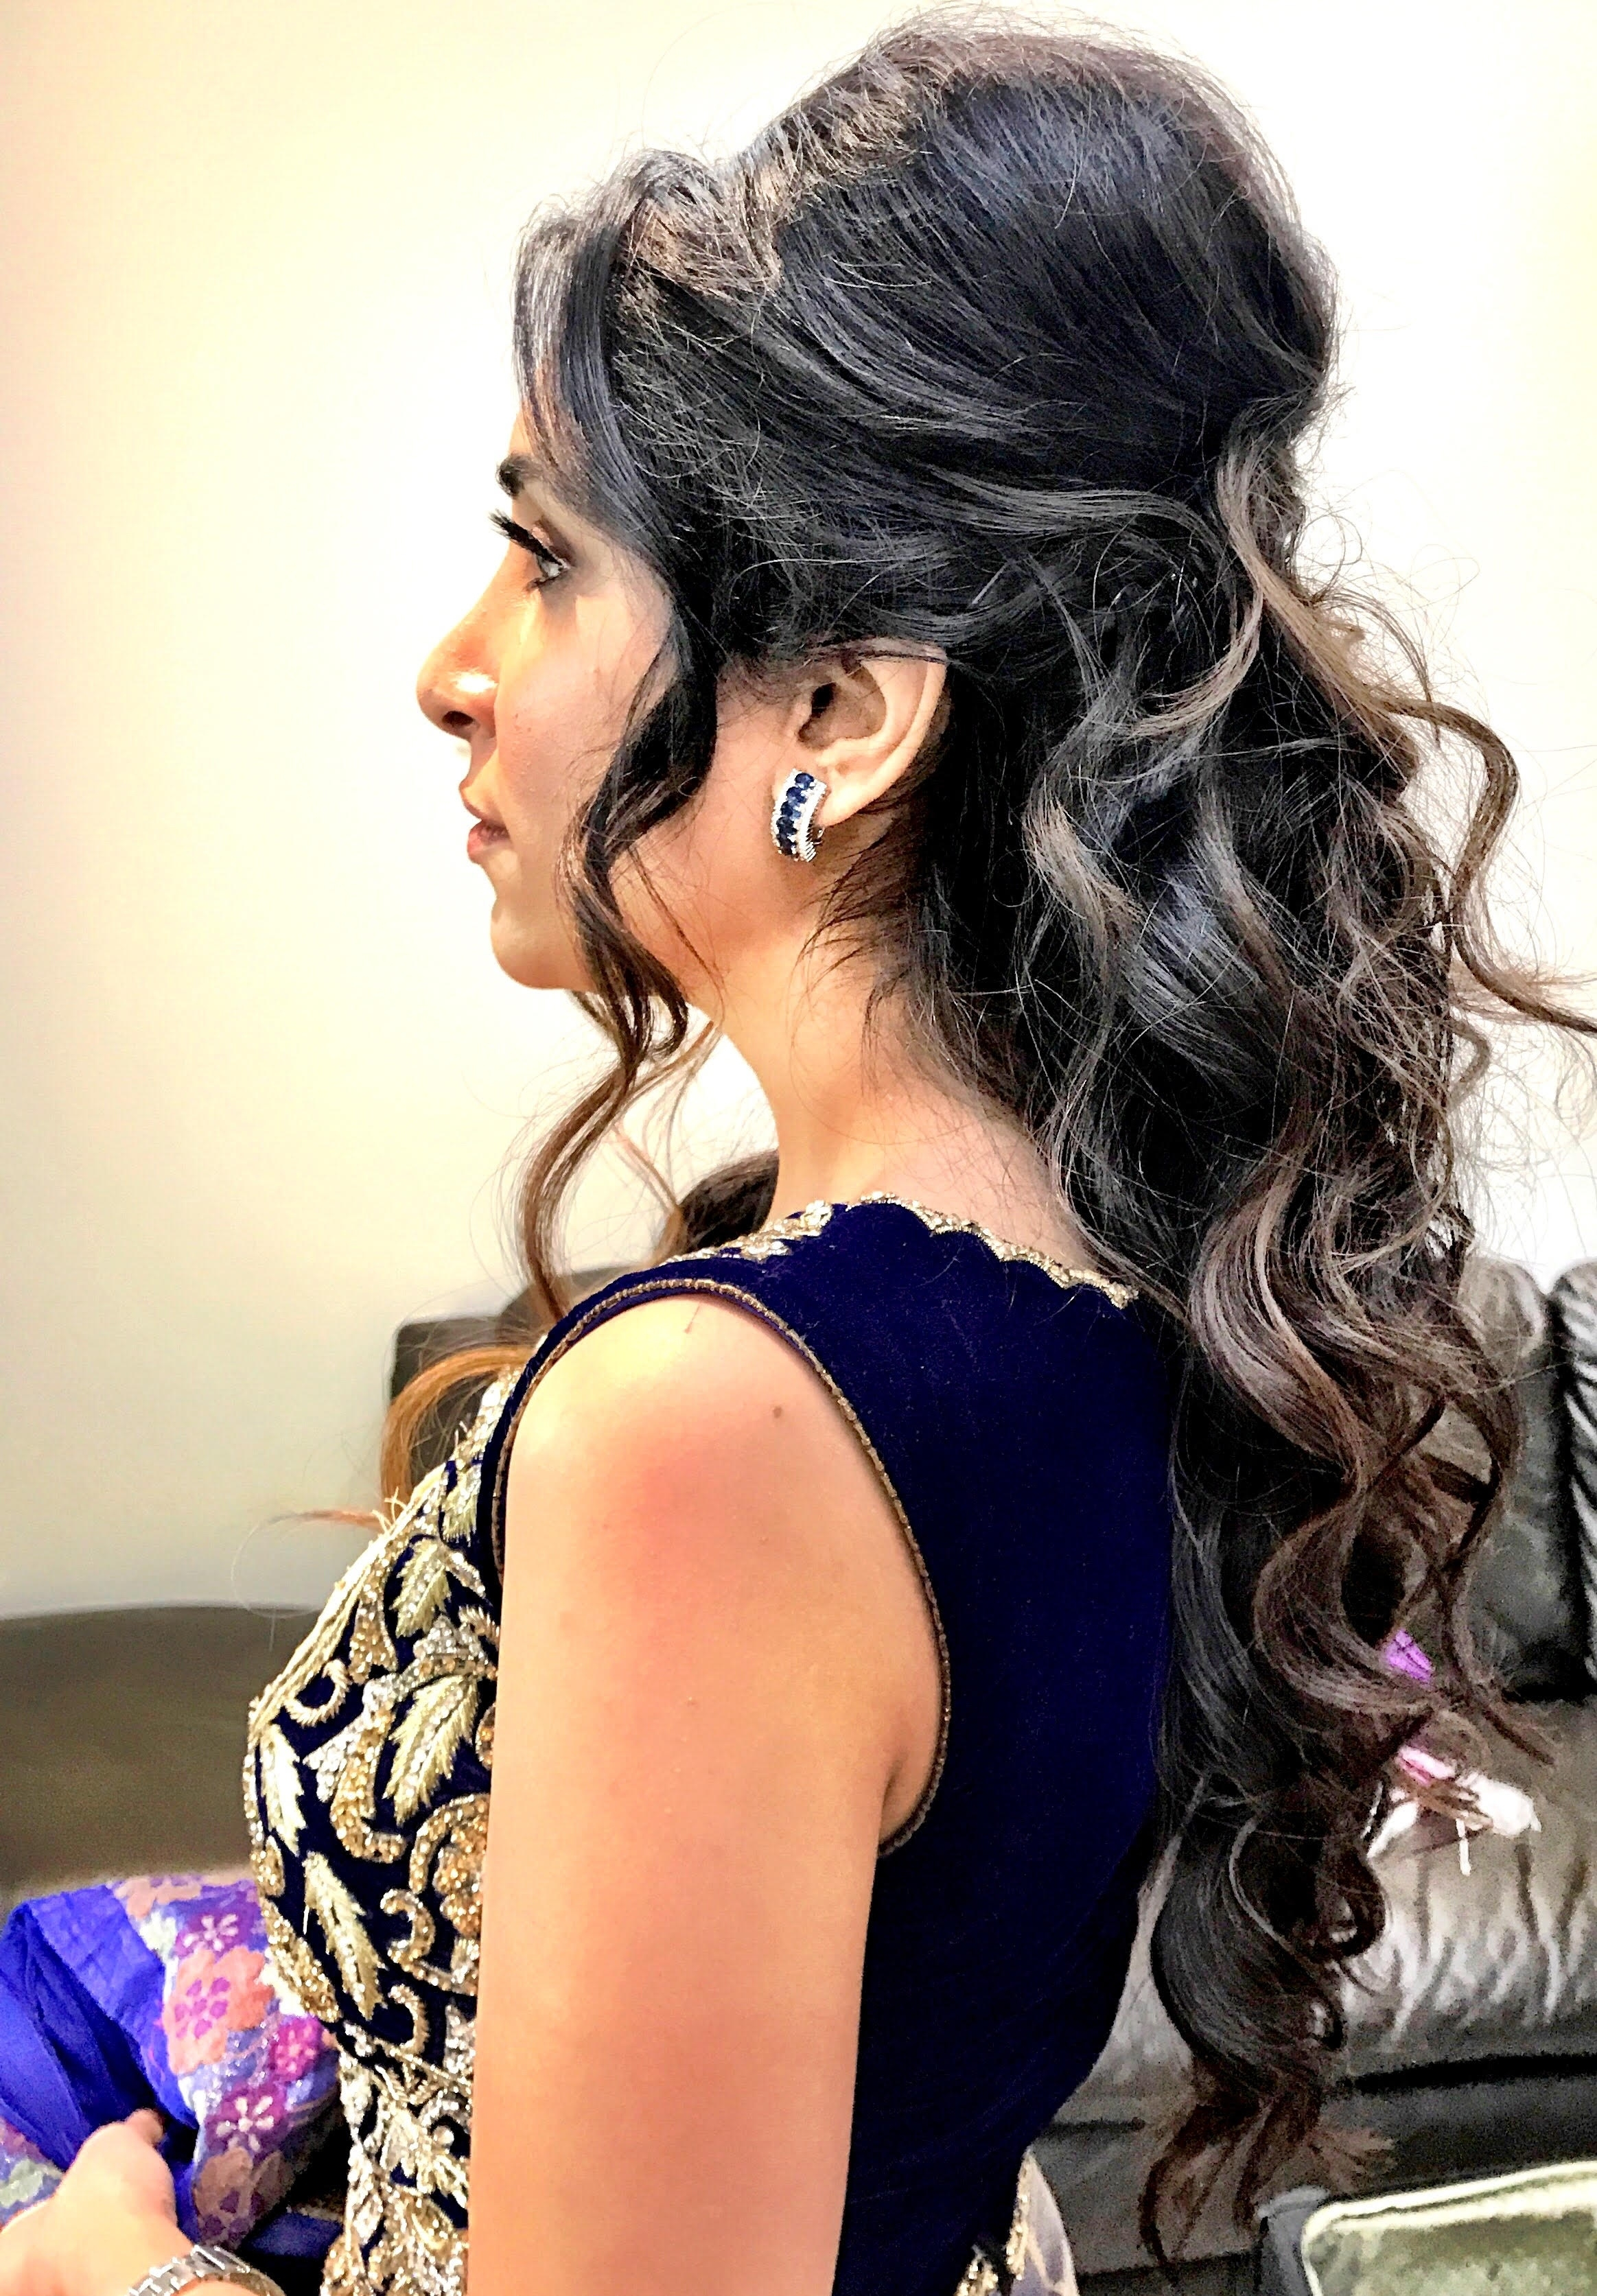 Asian And Indian Wedding Makeup By Kaz Fernando inside Top-drawer Asian Hairstyles For Wedding Party